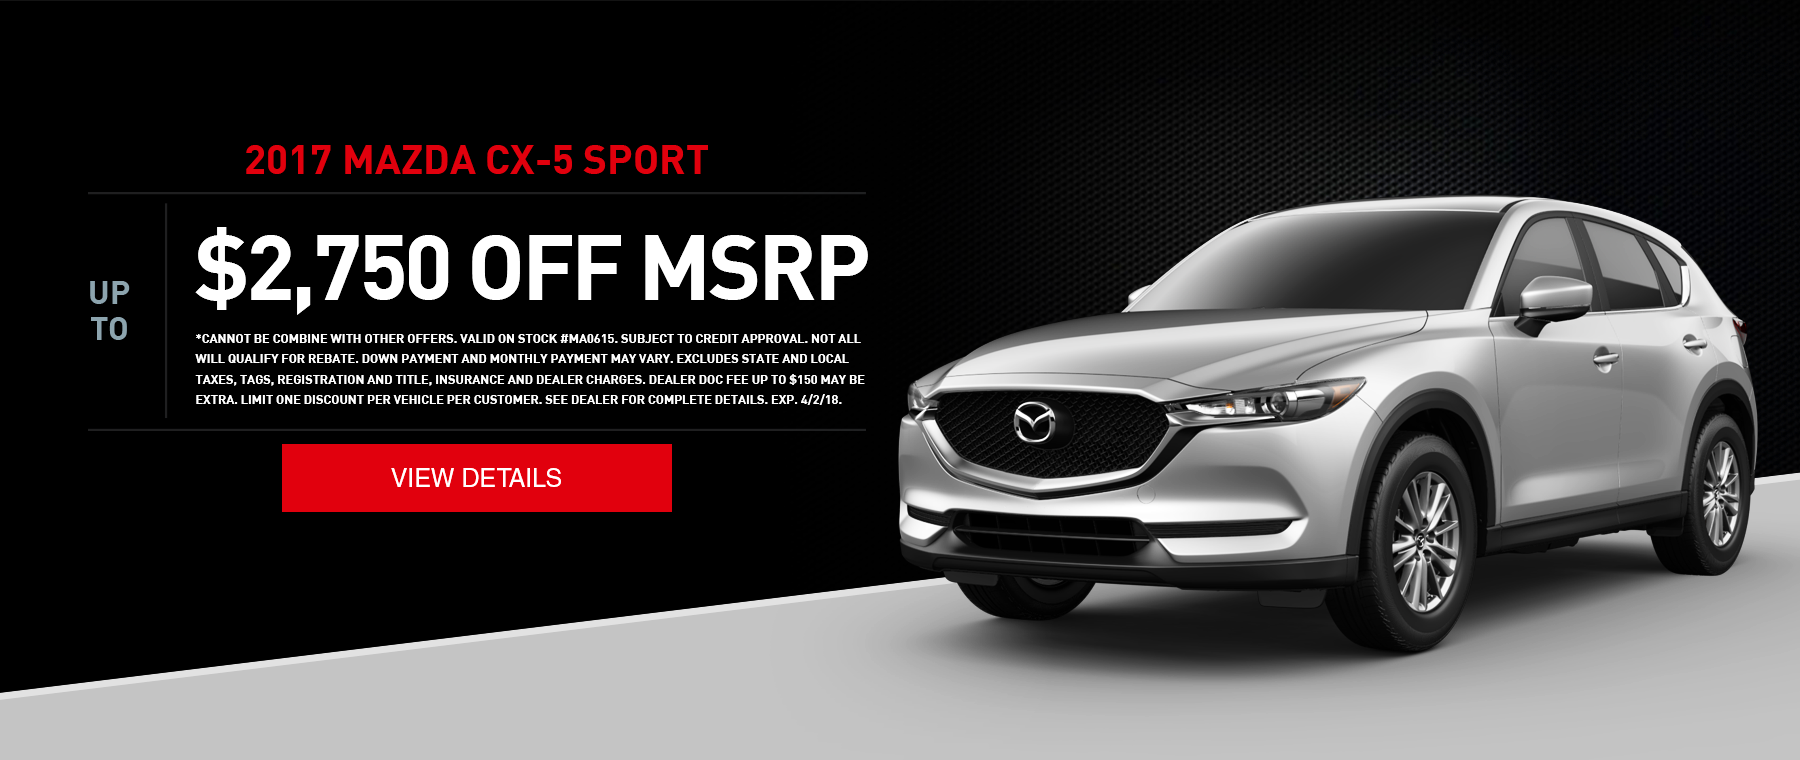 West Hills Mazda CX-5 Special Offer